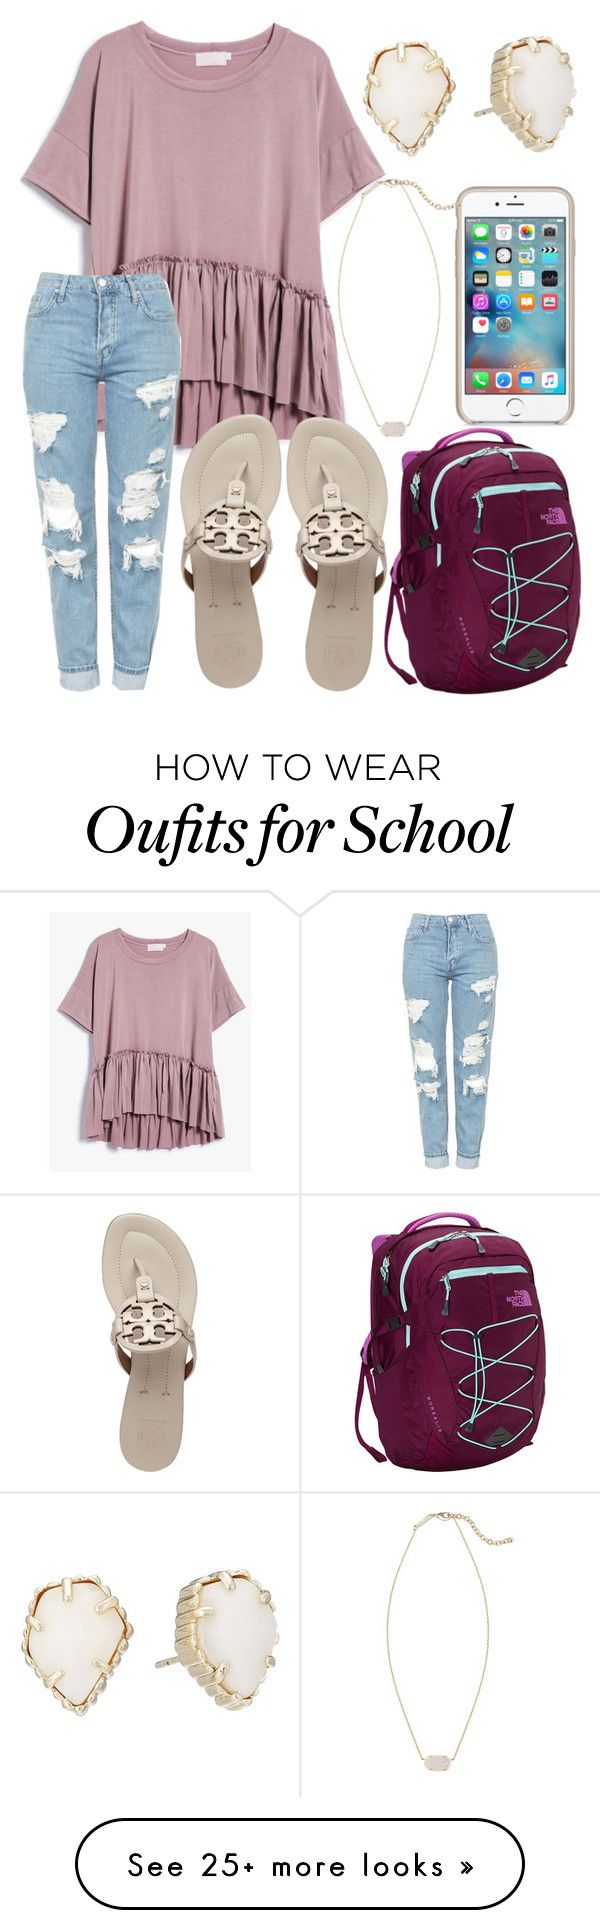 """School outfit"" by jadenriley21 on Polyvore featuring Topshop, Tory Burch, The North Face and Kendra Scott"